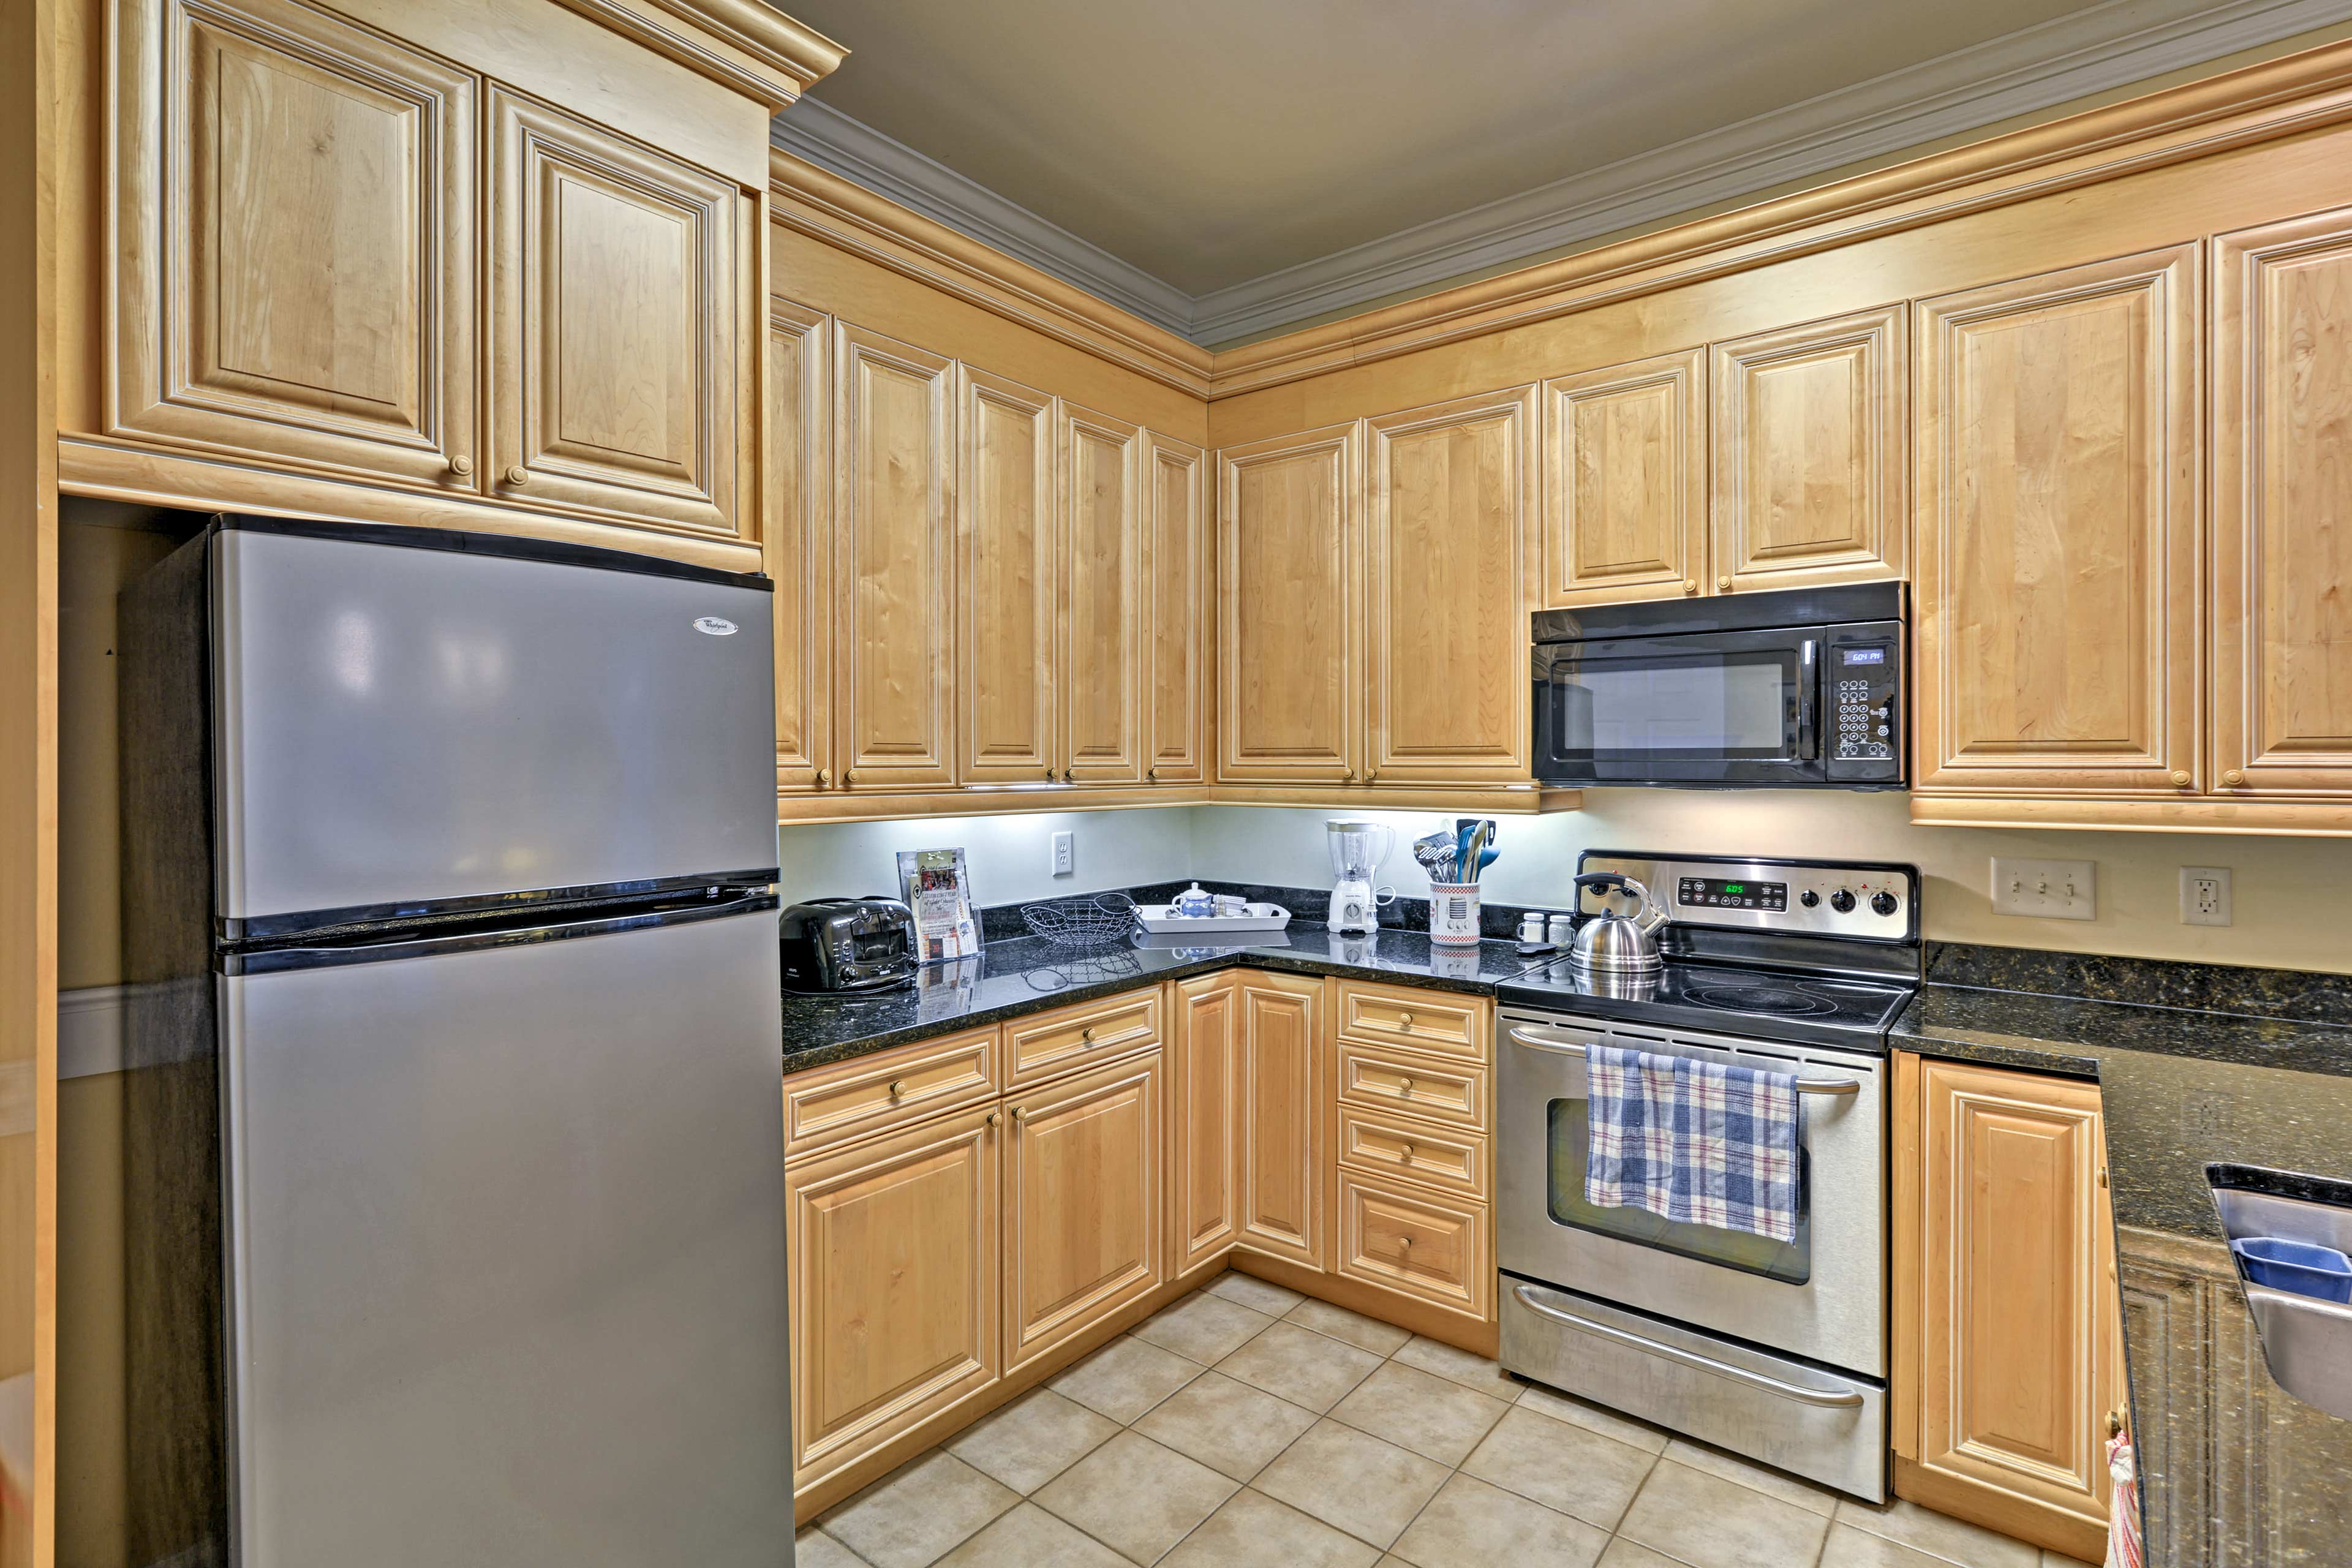 Prepare favorite recipes in the fully equipped kitchen featuring a dishwasher!